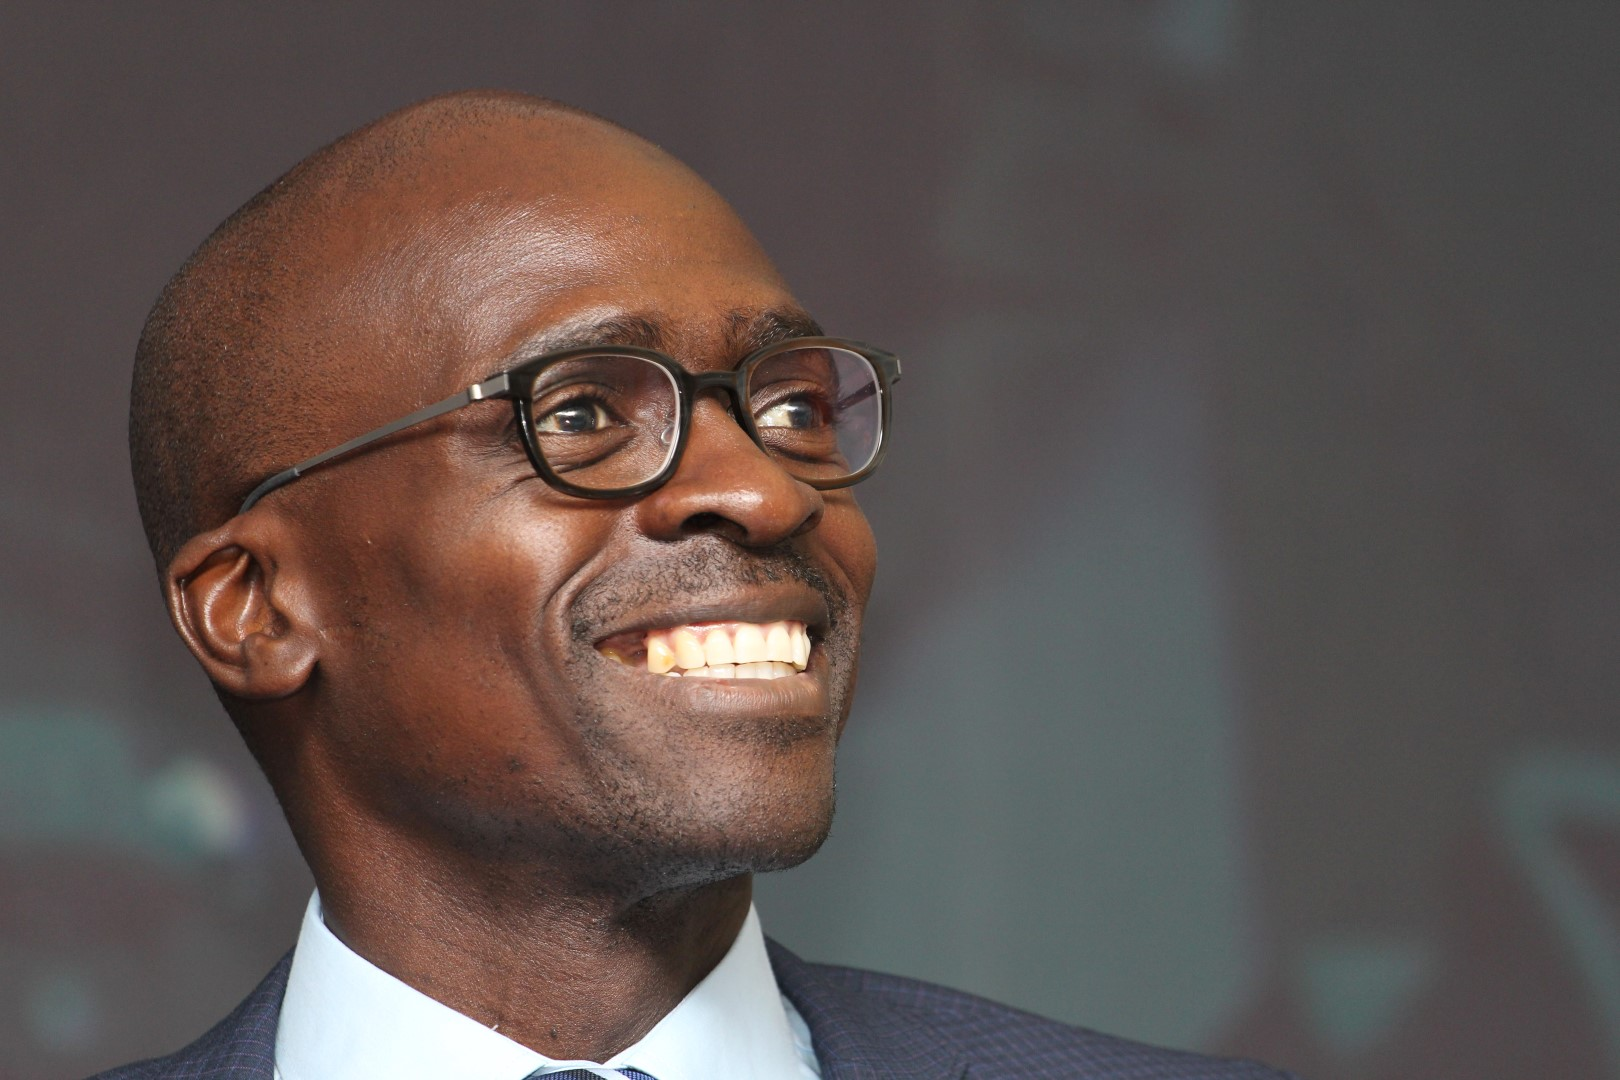 Who's who guide to the top contenders to lead the ANC - Moneyweb